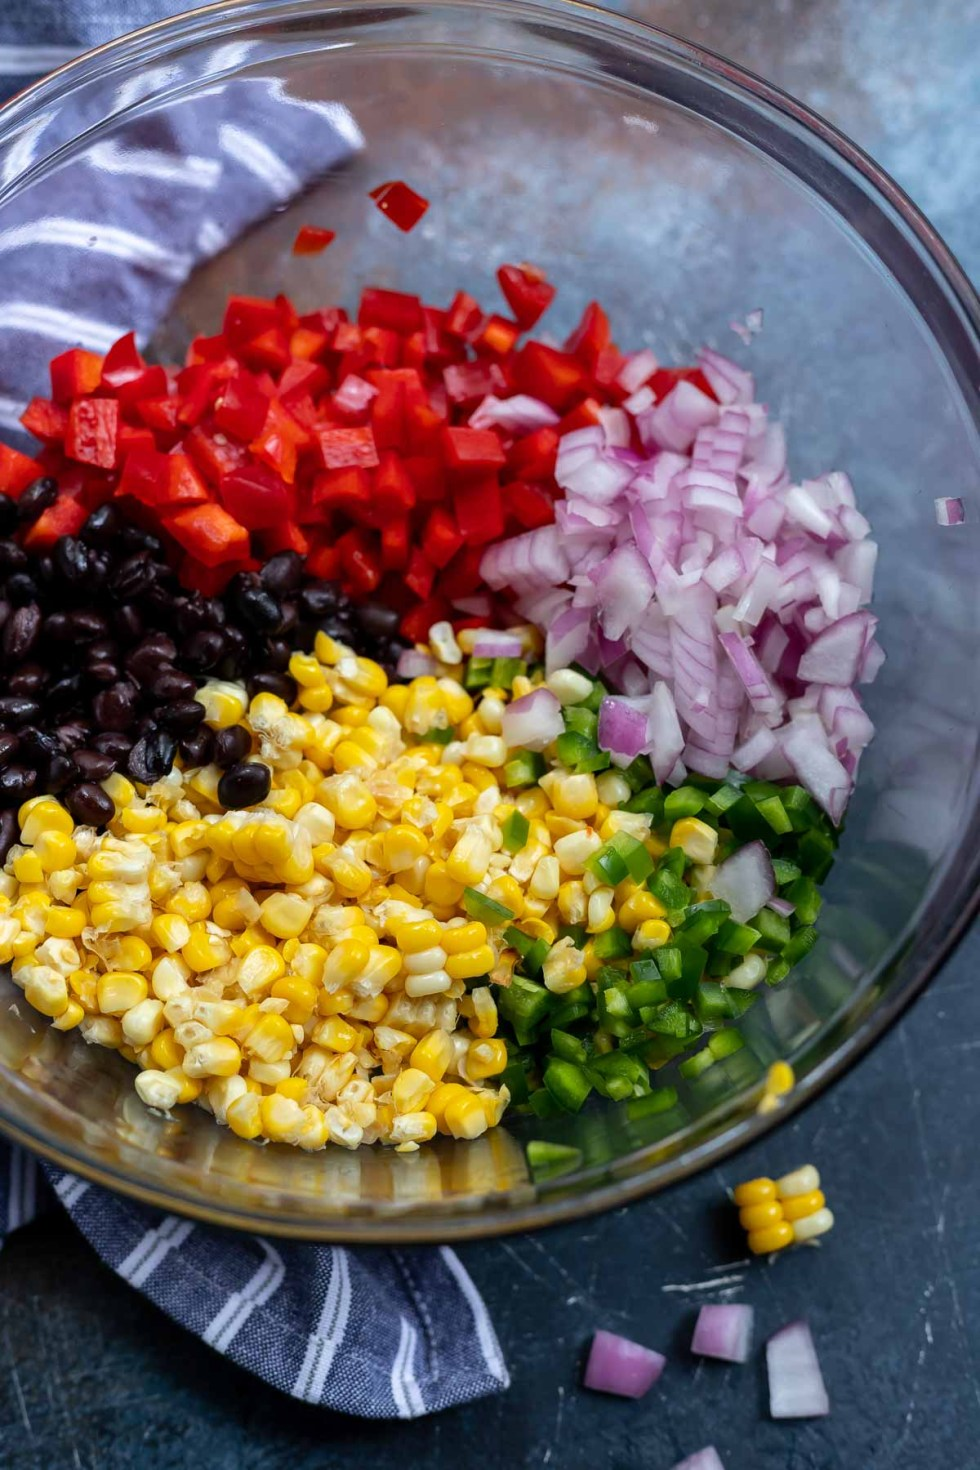 corn, black beans, onions and peppers in clear glass bowl